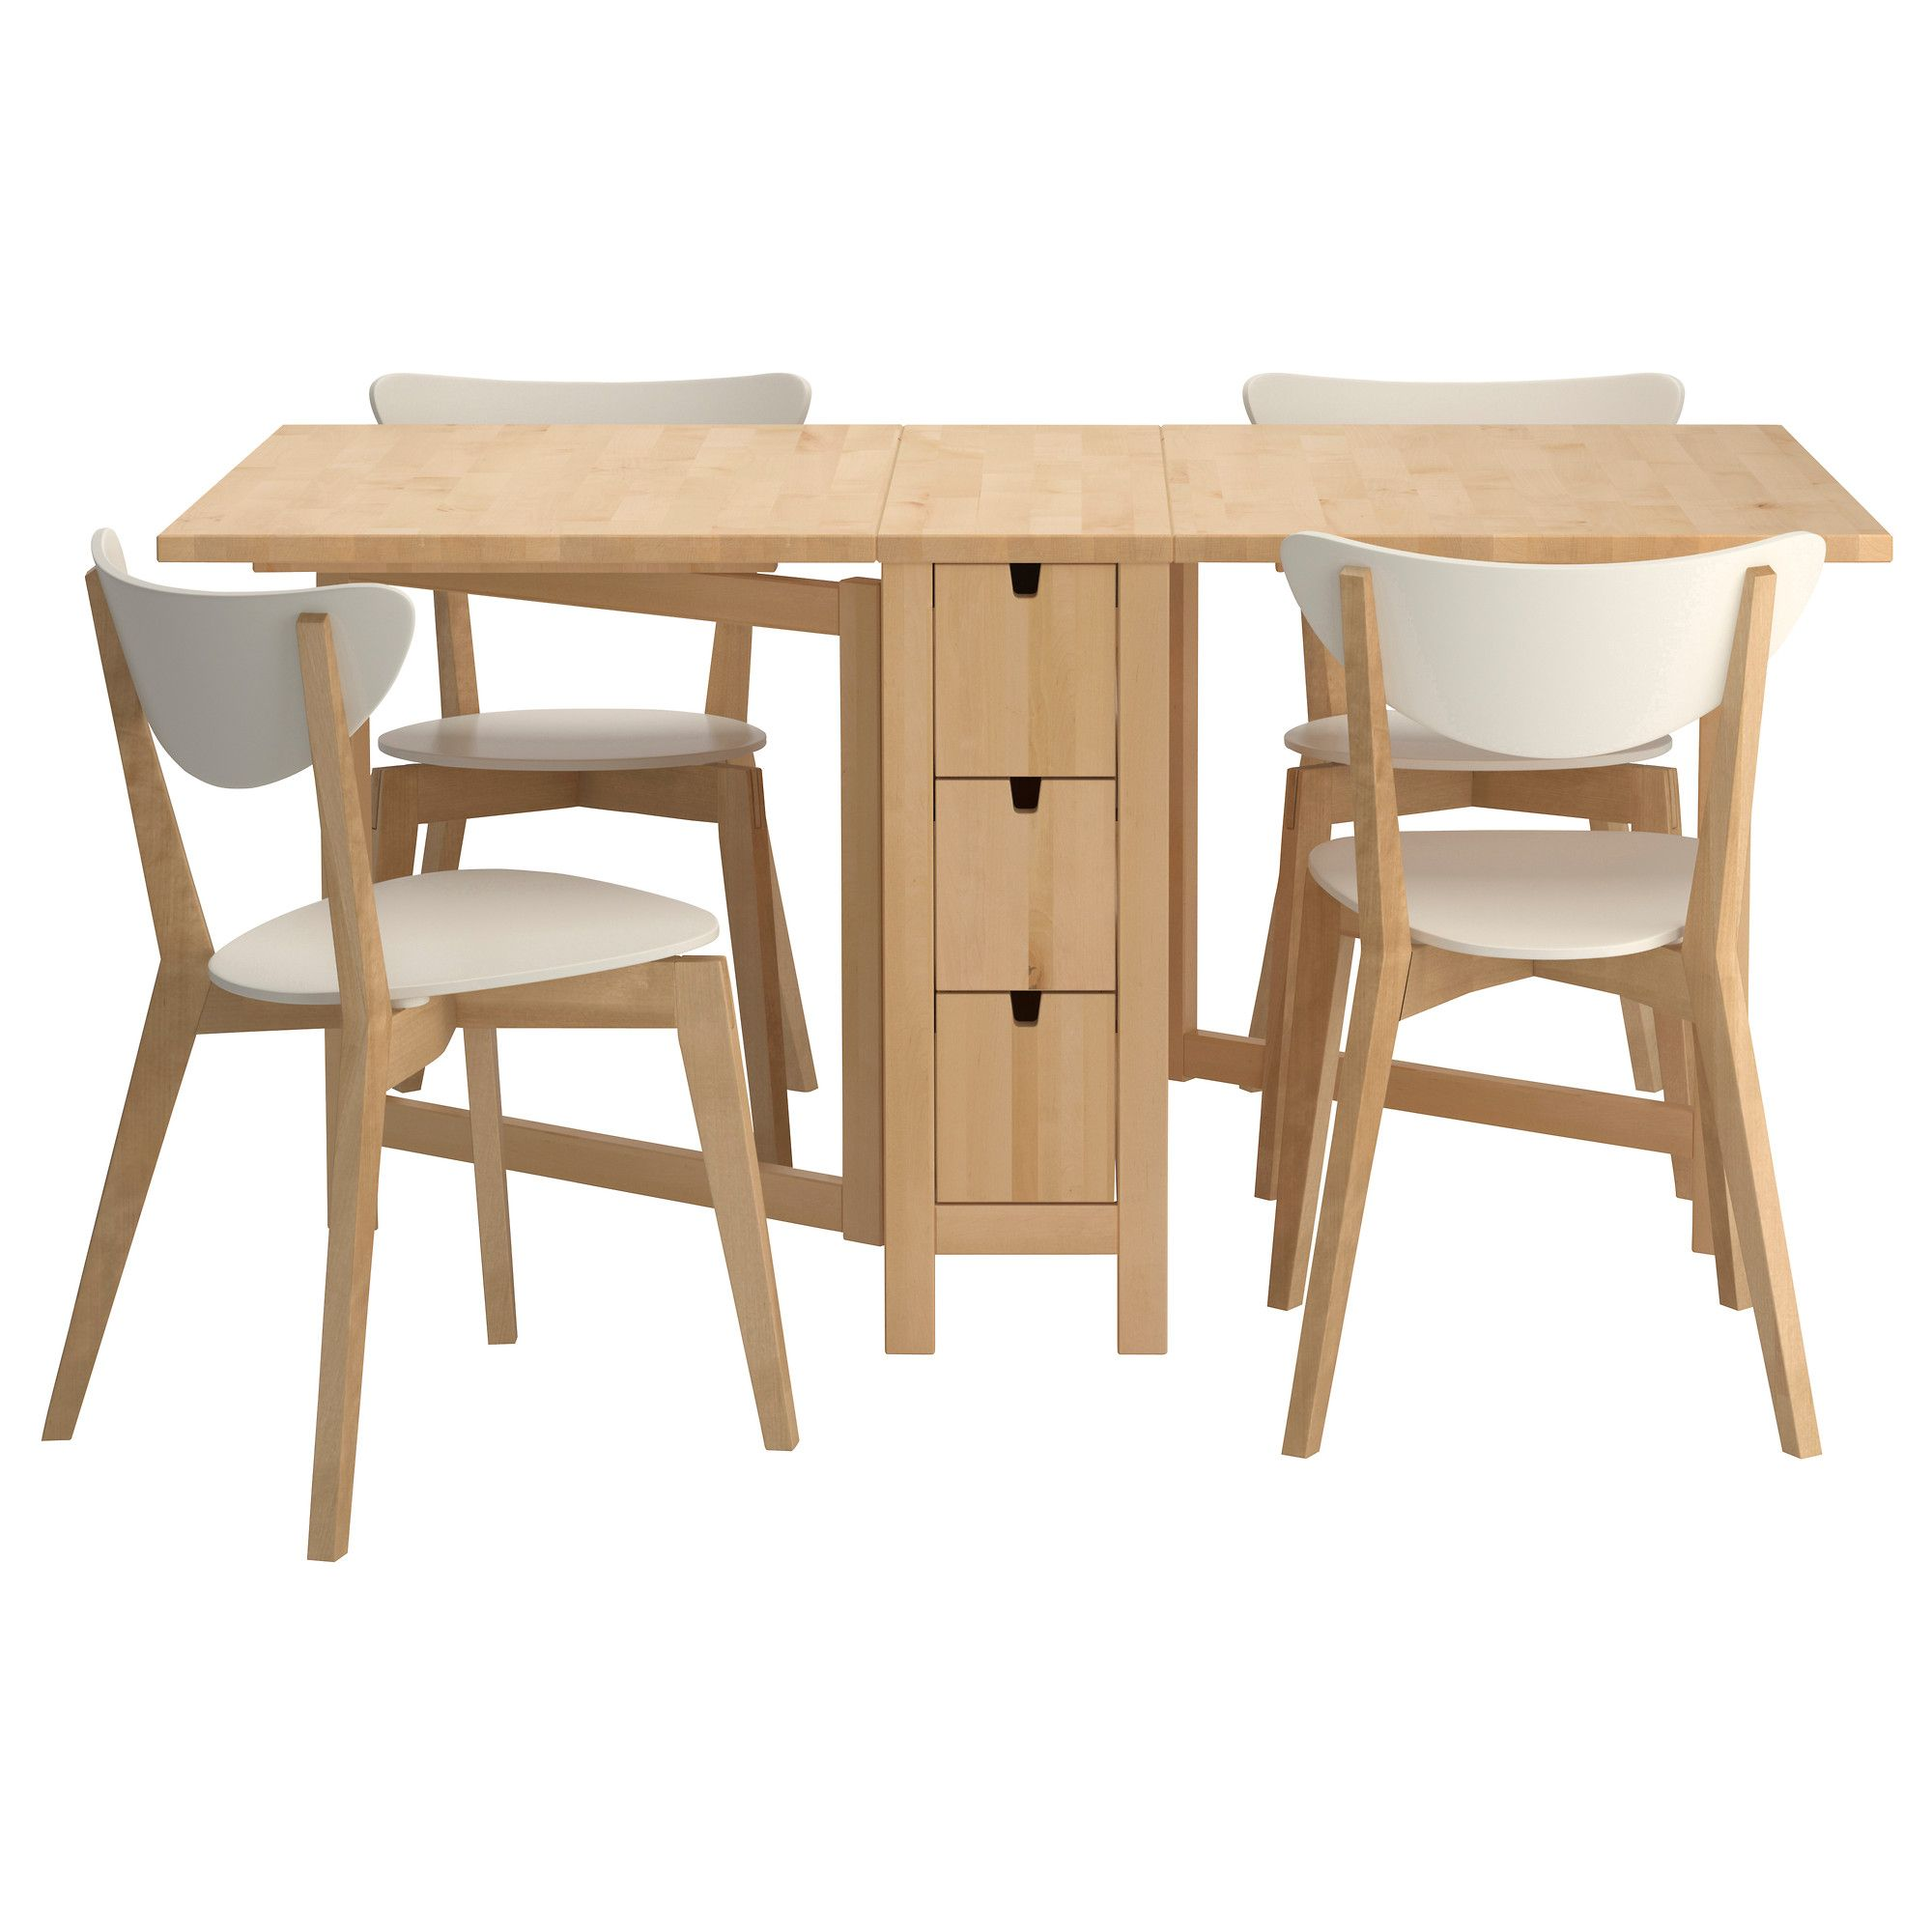 Norden nordmyra table and 4 chairs ikea for the love for Table avec 2 chaises